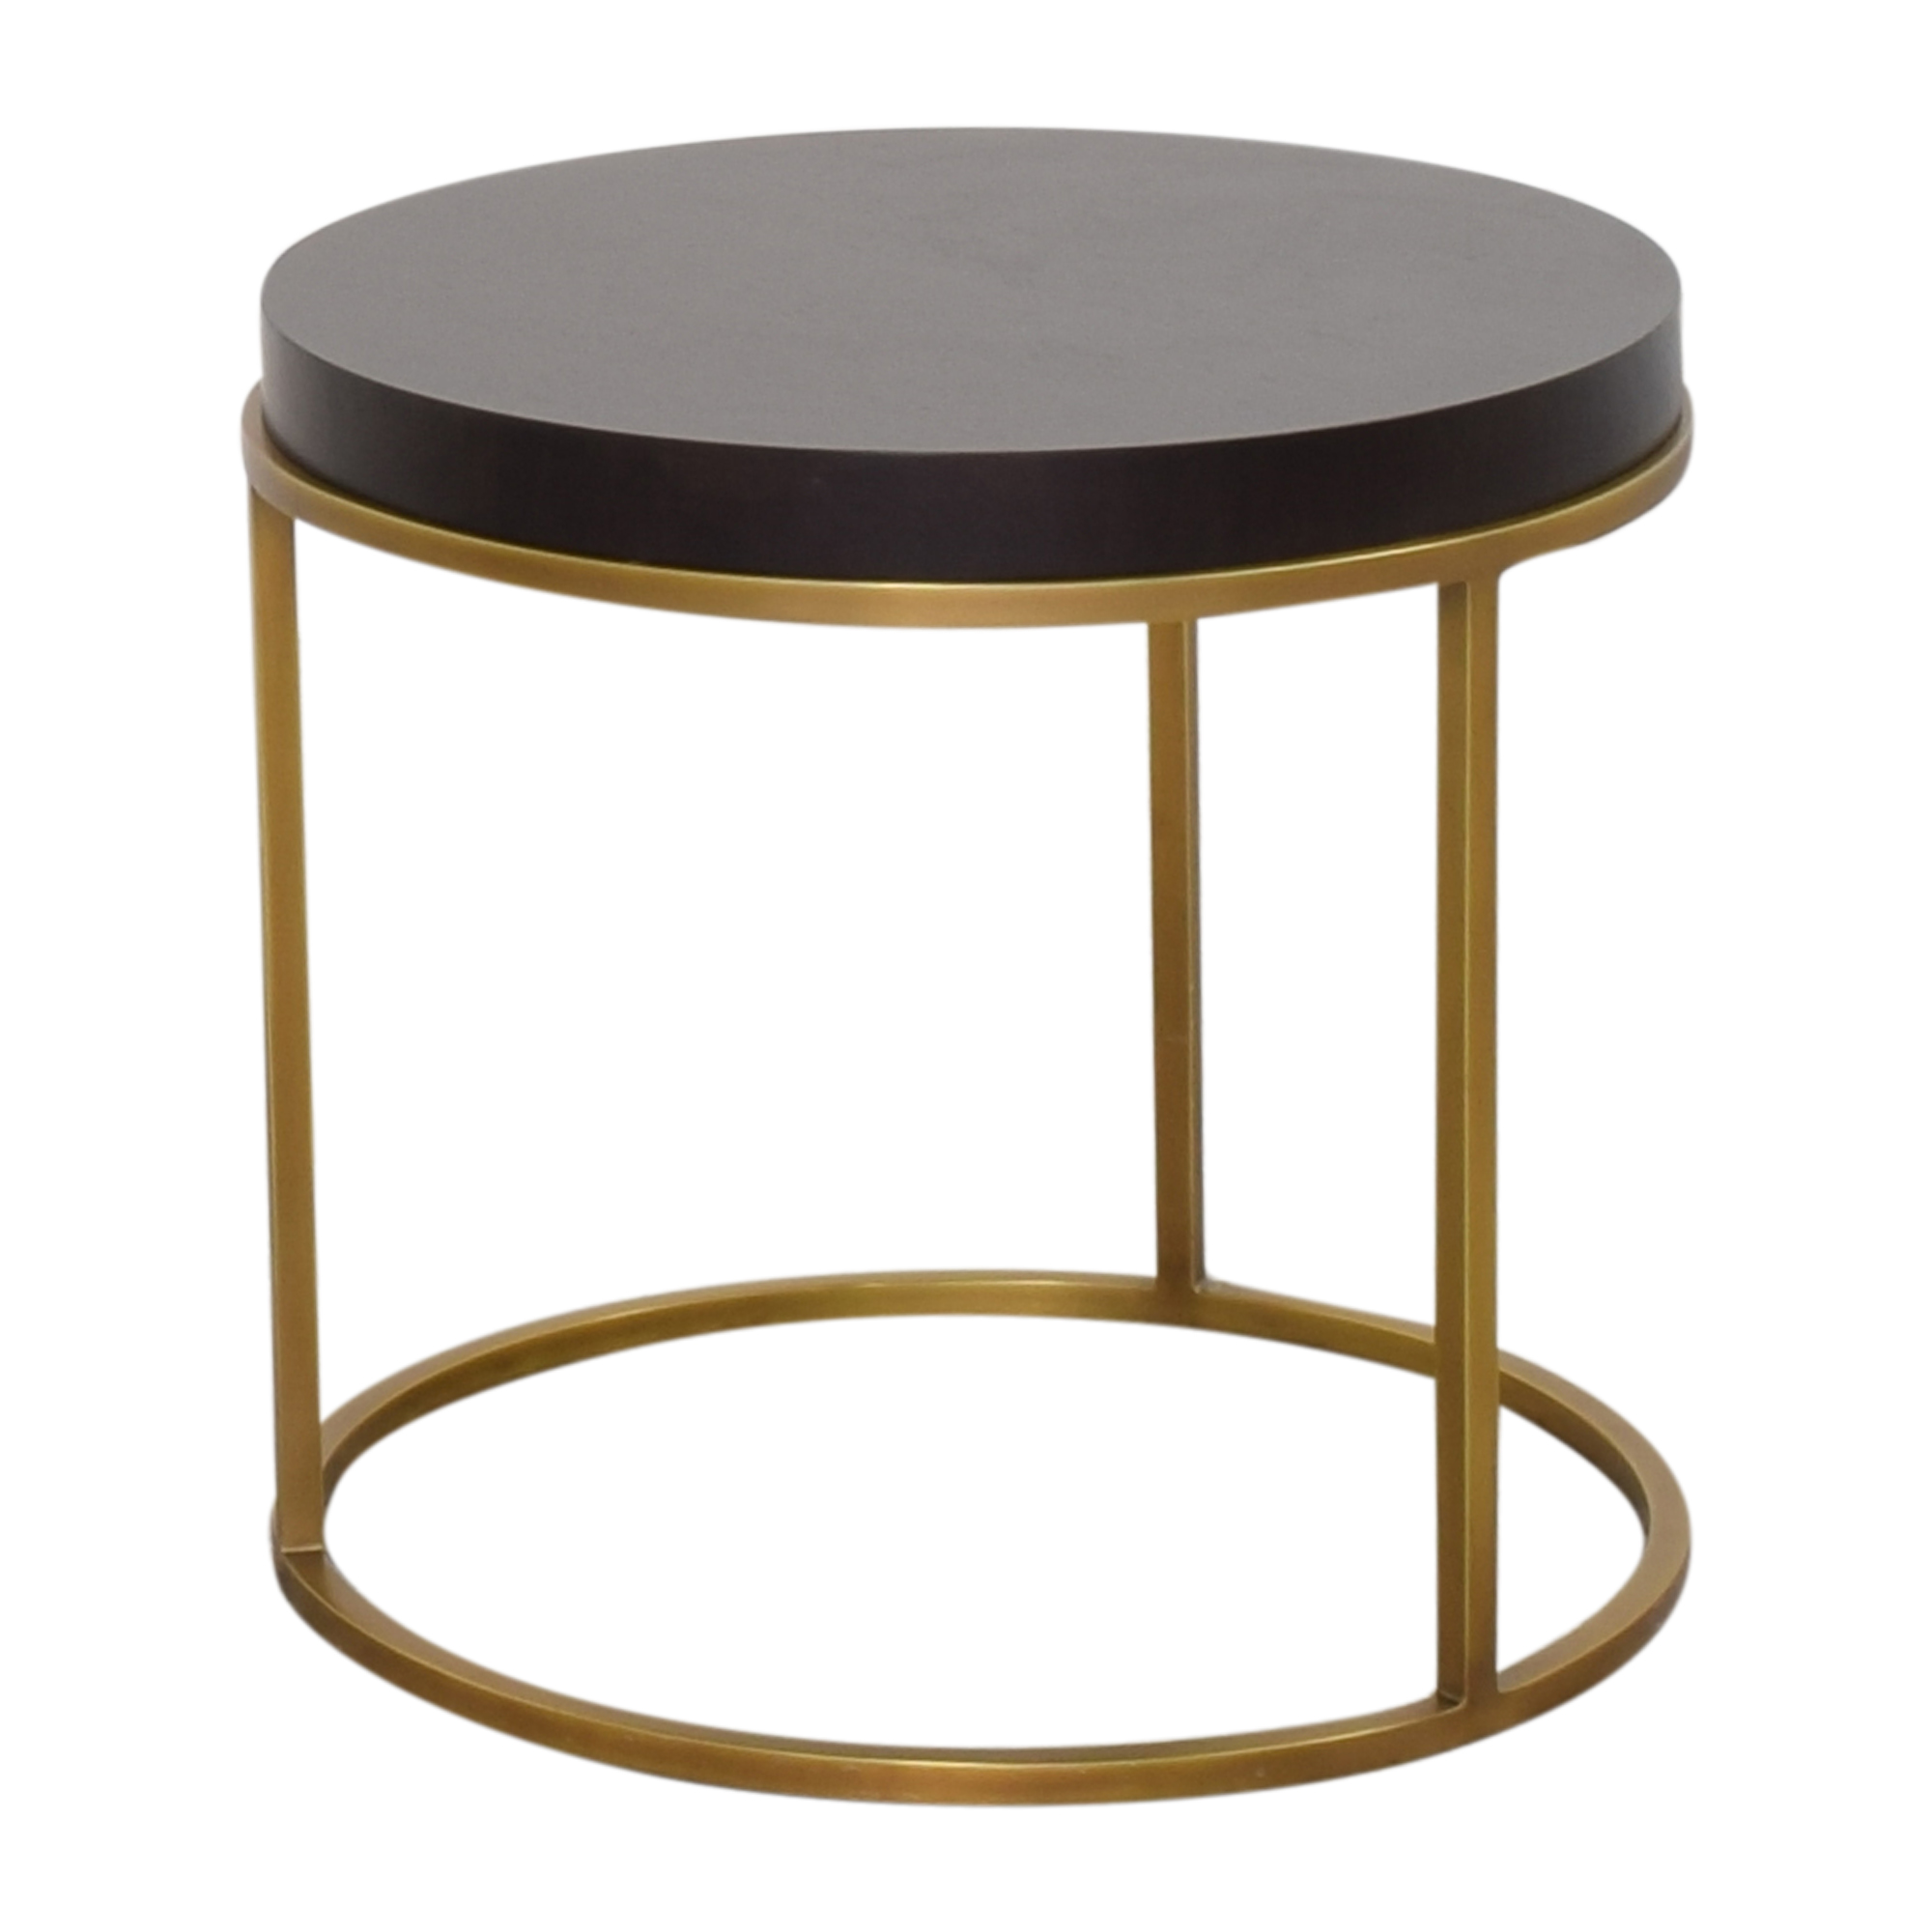 Restoration Hardware Restoration Hardware Nicholas Round Side Table End Tables